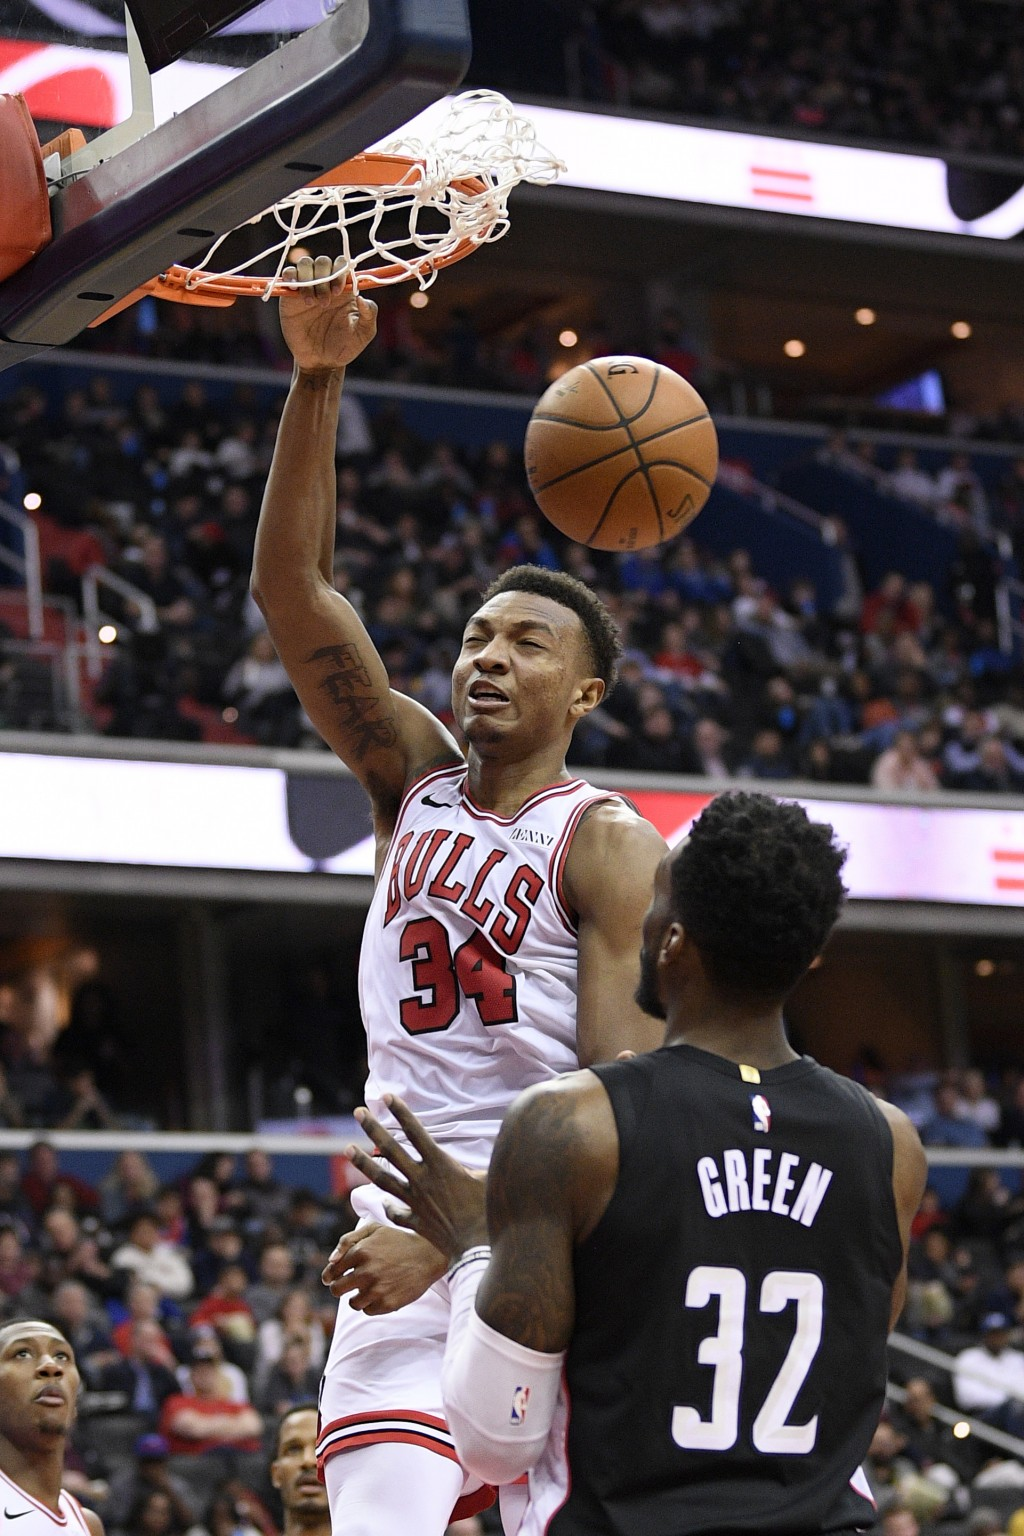 Chicago Bulls forward Wendell Carter Jr. (34) dunks over Washington Wizards forward Jeff Green (32) during the second half of an NBA basketball game, ...